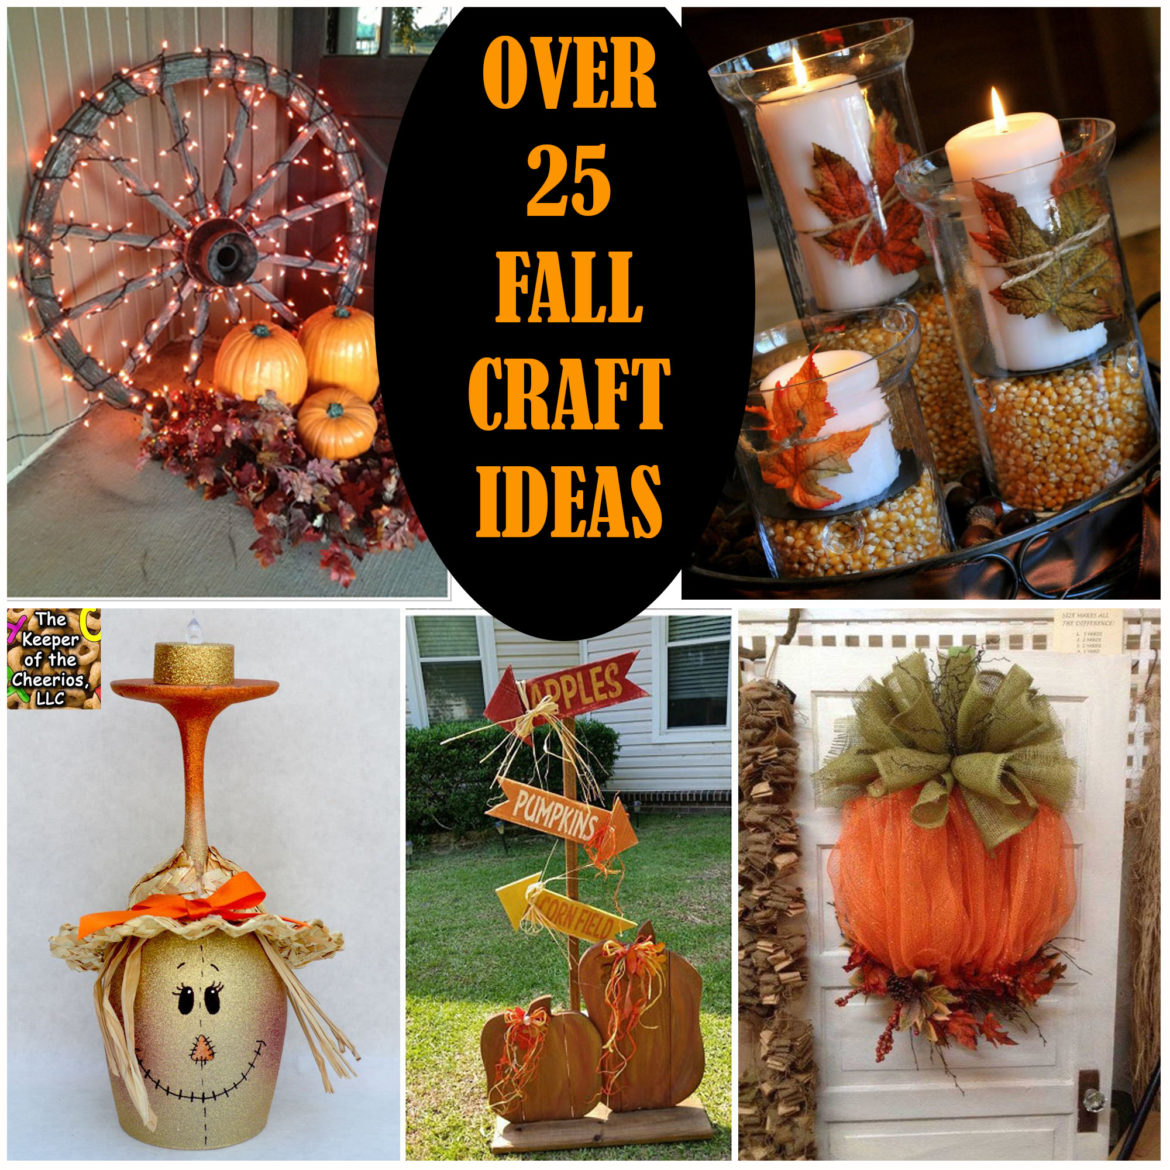 FALL CRAFT IDEAS